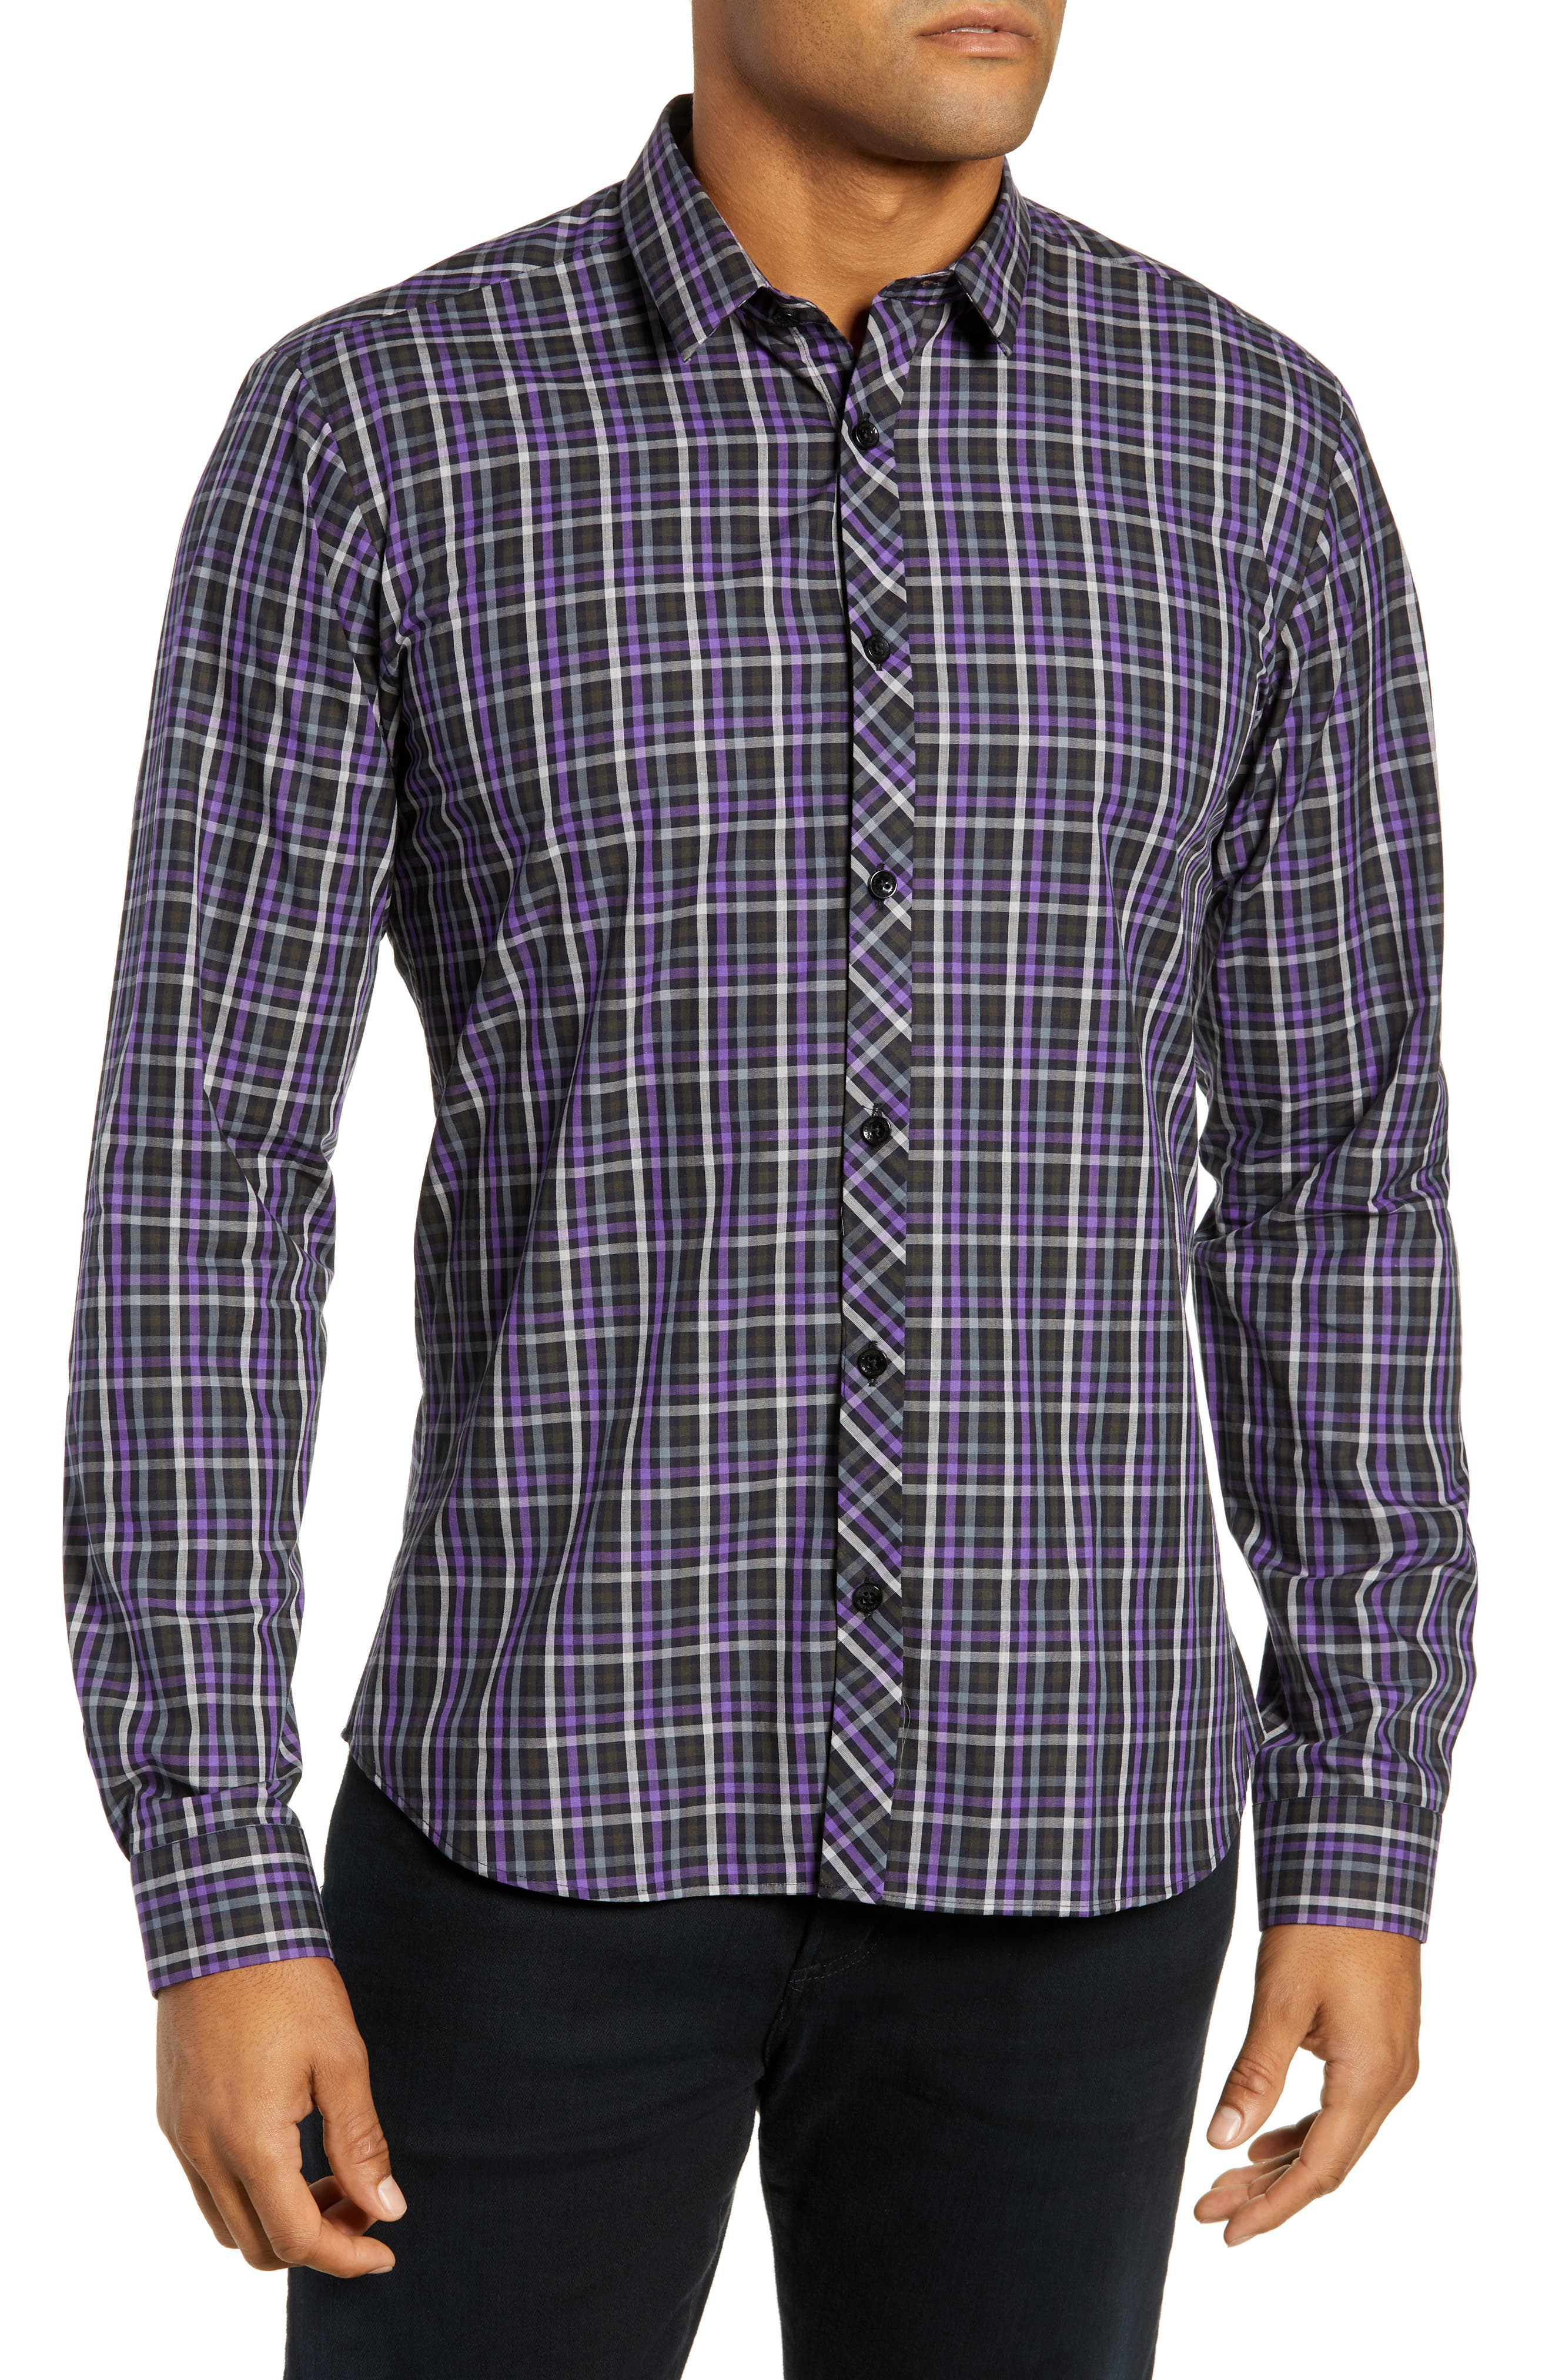 Trim Fit Sport Shirt,                             Main thumbnail 1, color,                             PURPLE - BLACK MULTI CHECK